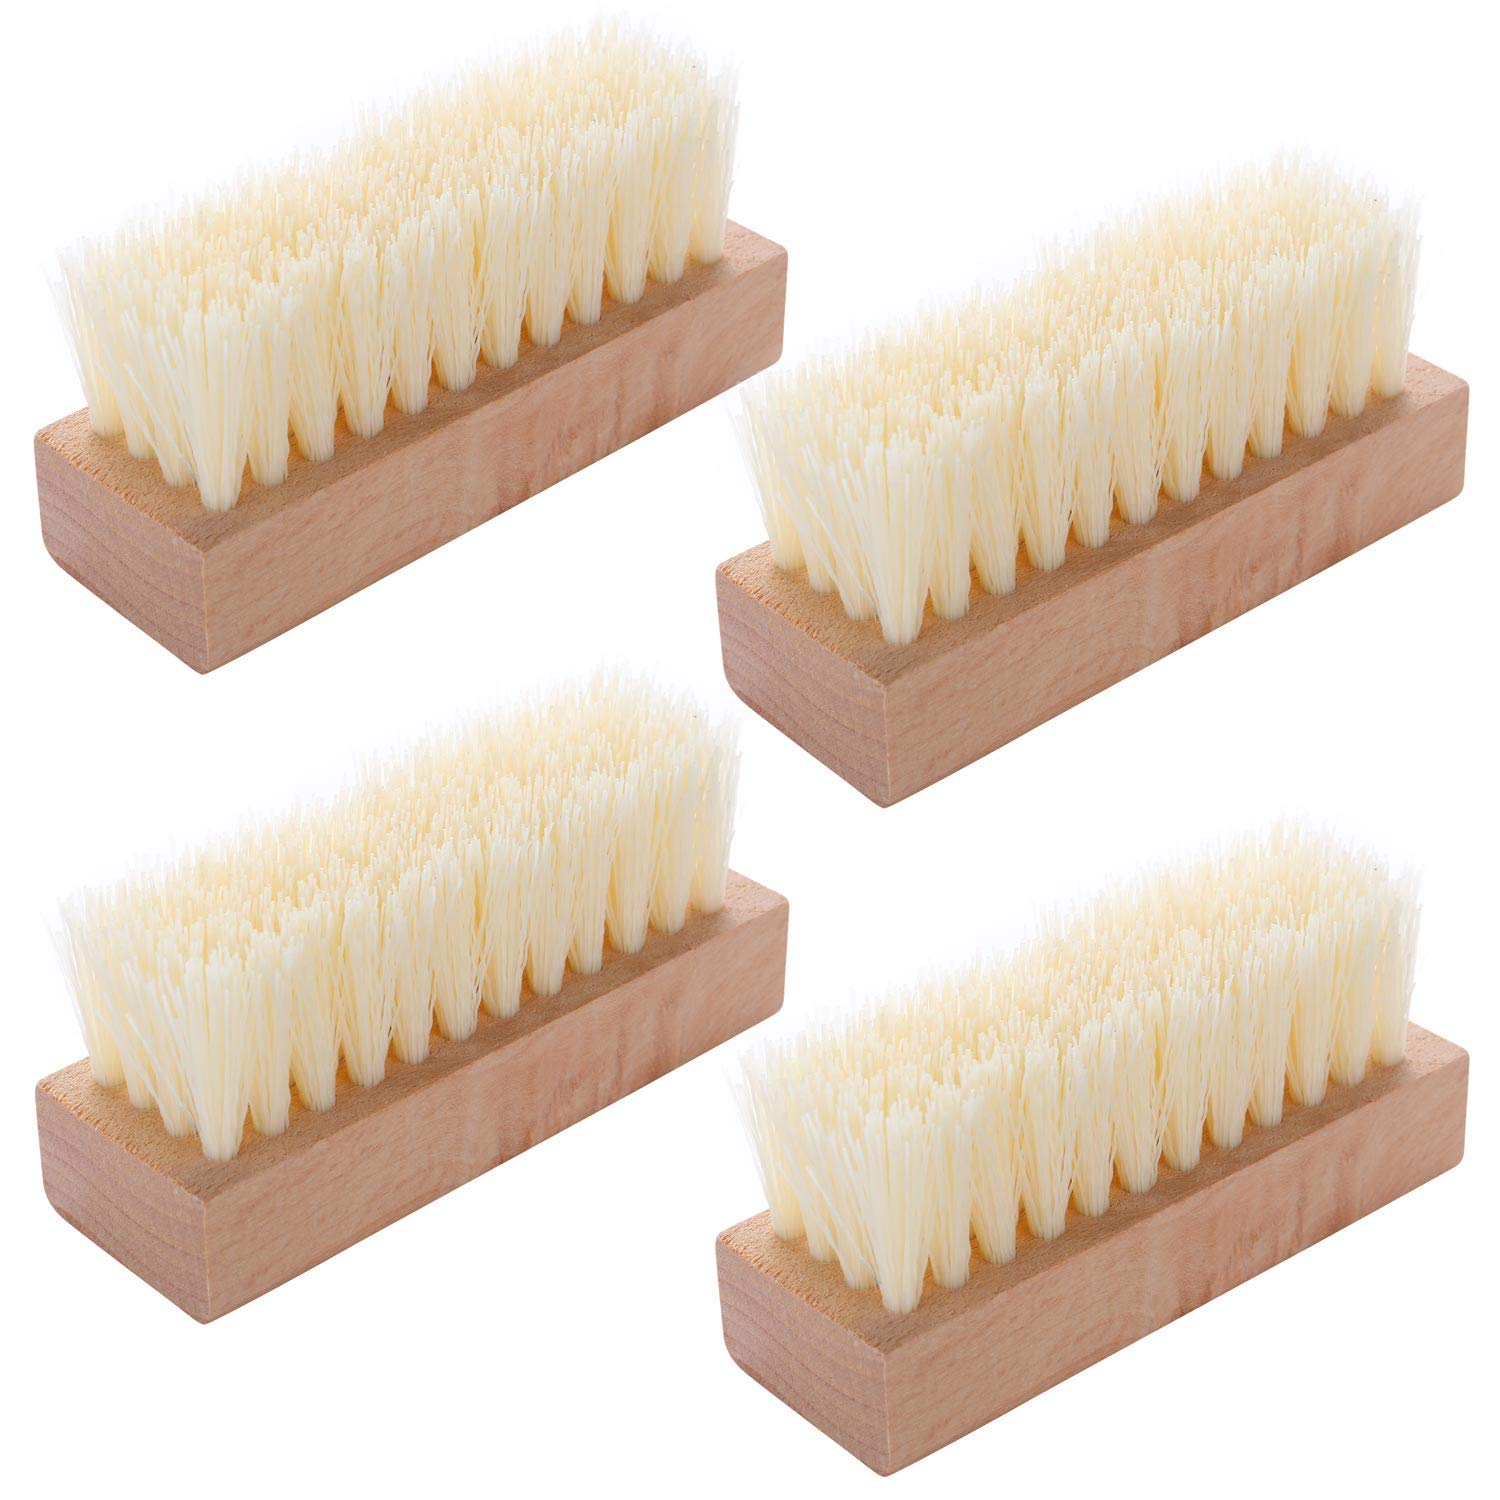 4 Pieces Non-Slip Wooden Hand Nail Scrub Brush for Toes and Nail